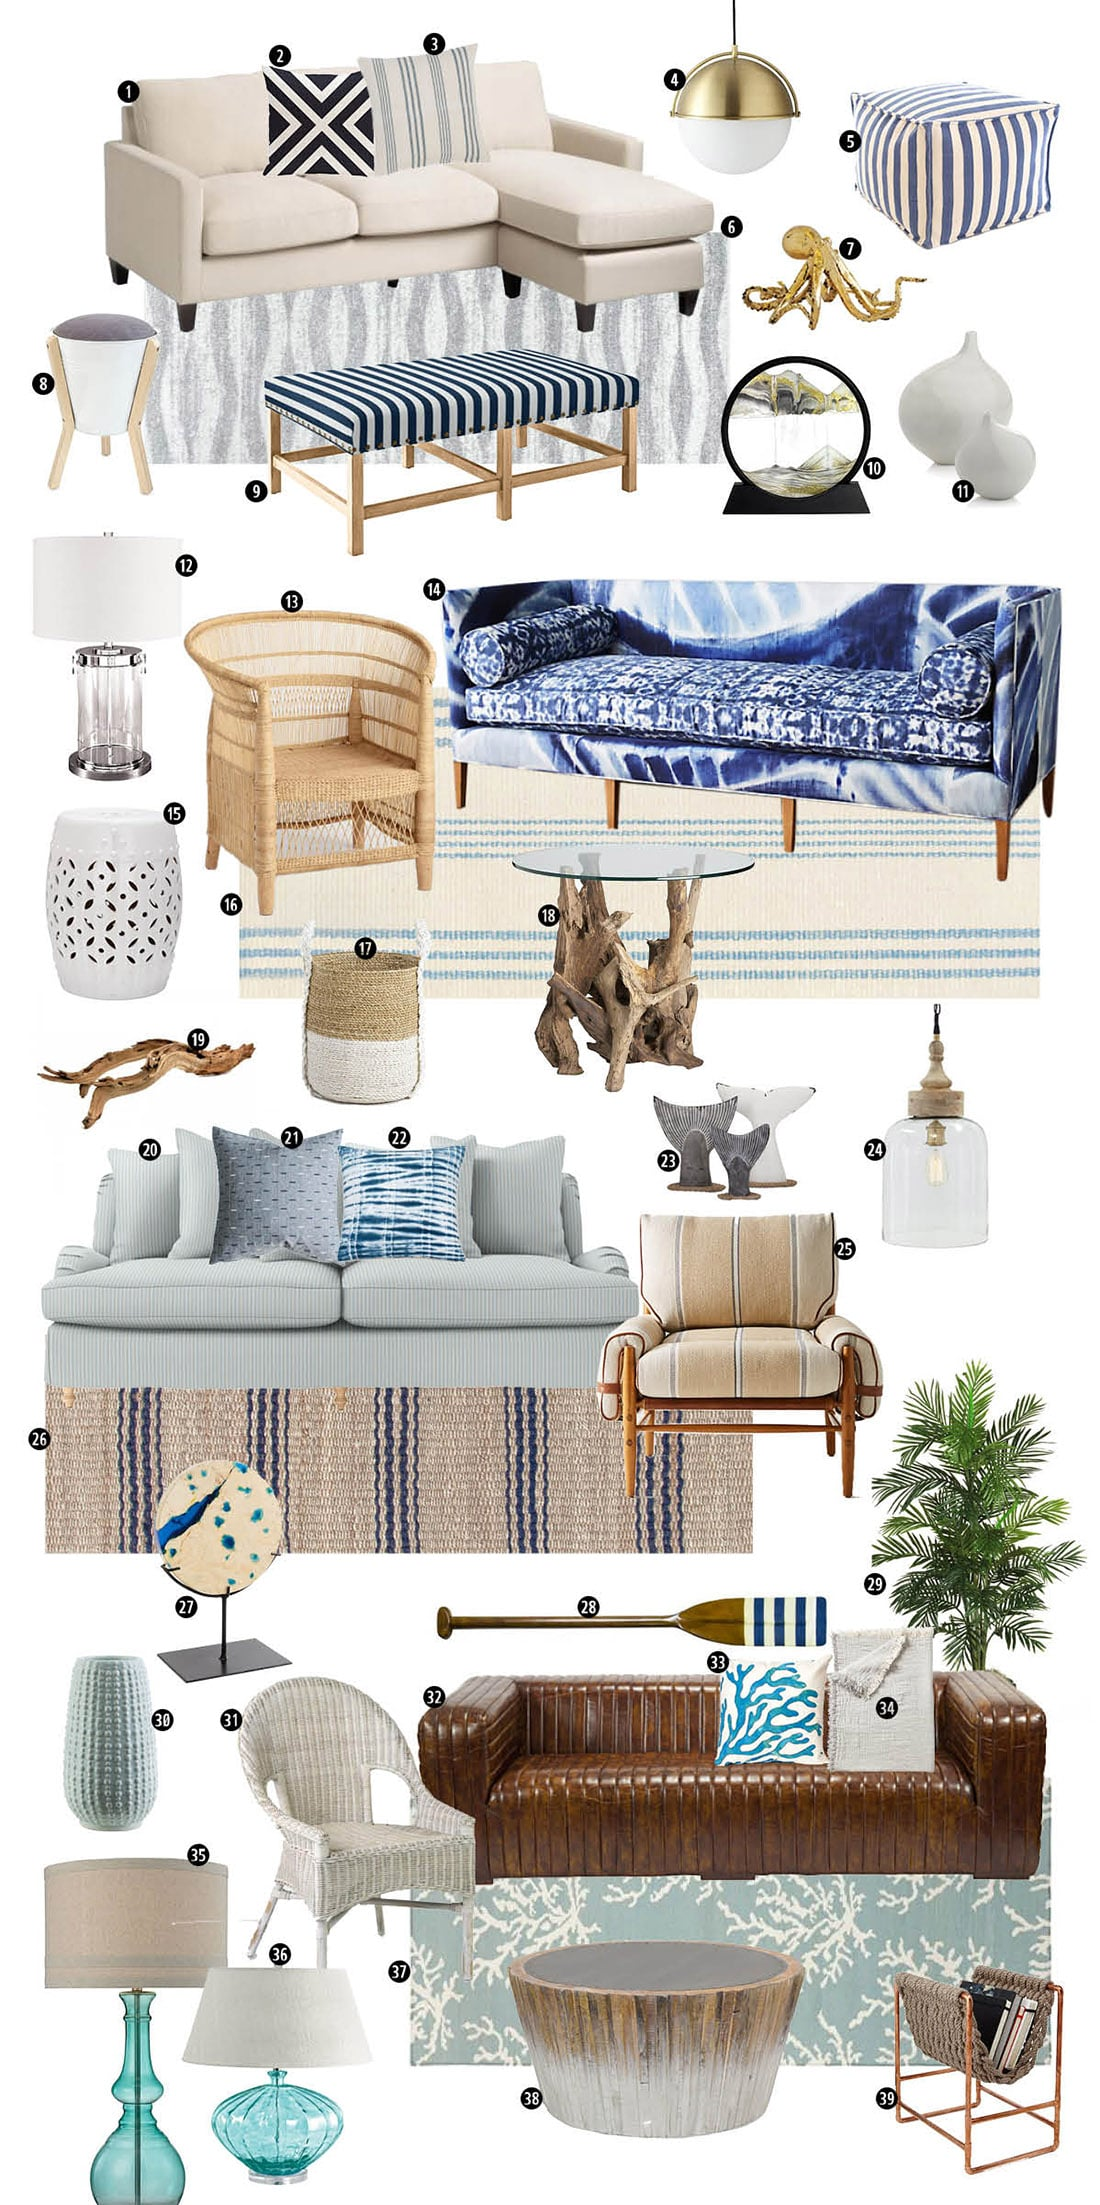 8 Signs Modern Coastal Decor Is The Right Home Style For